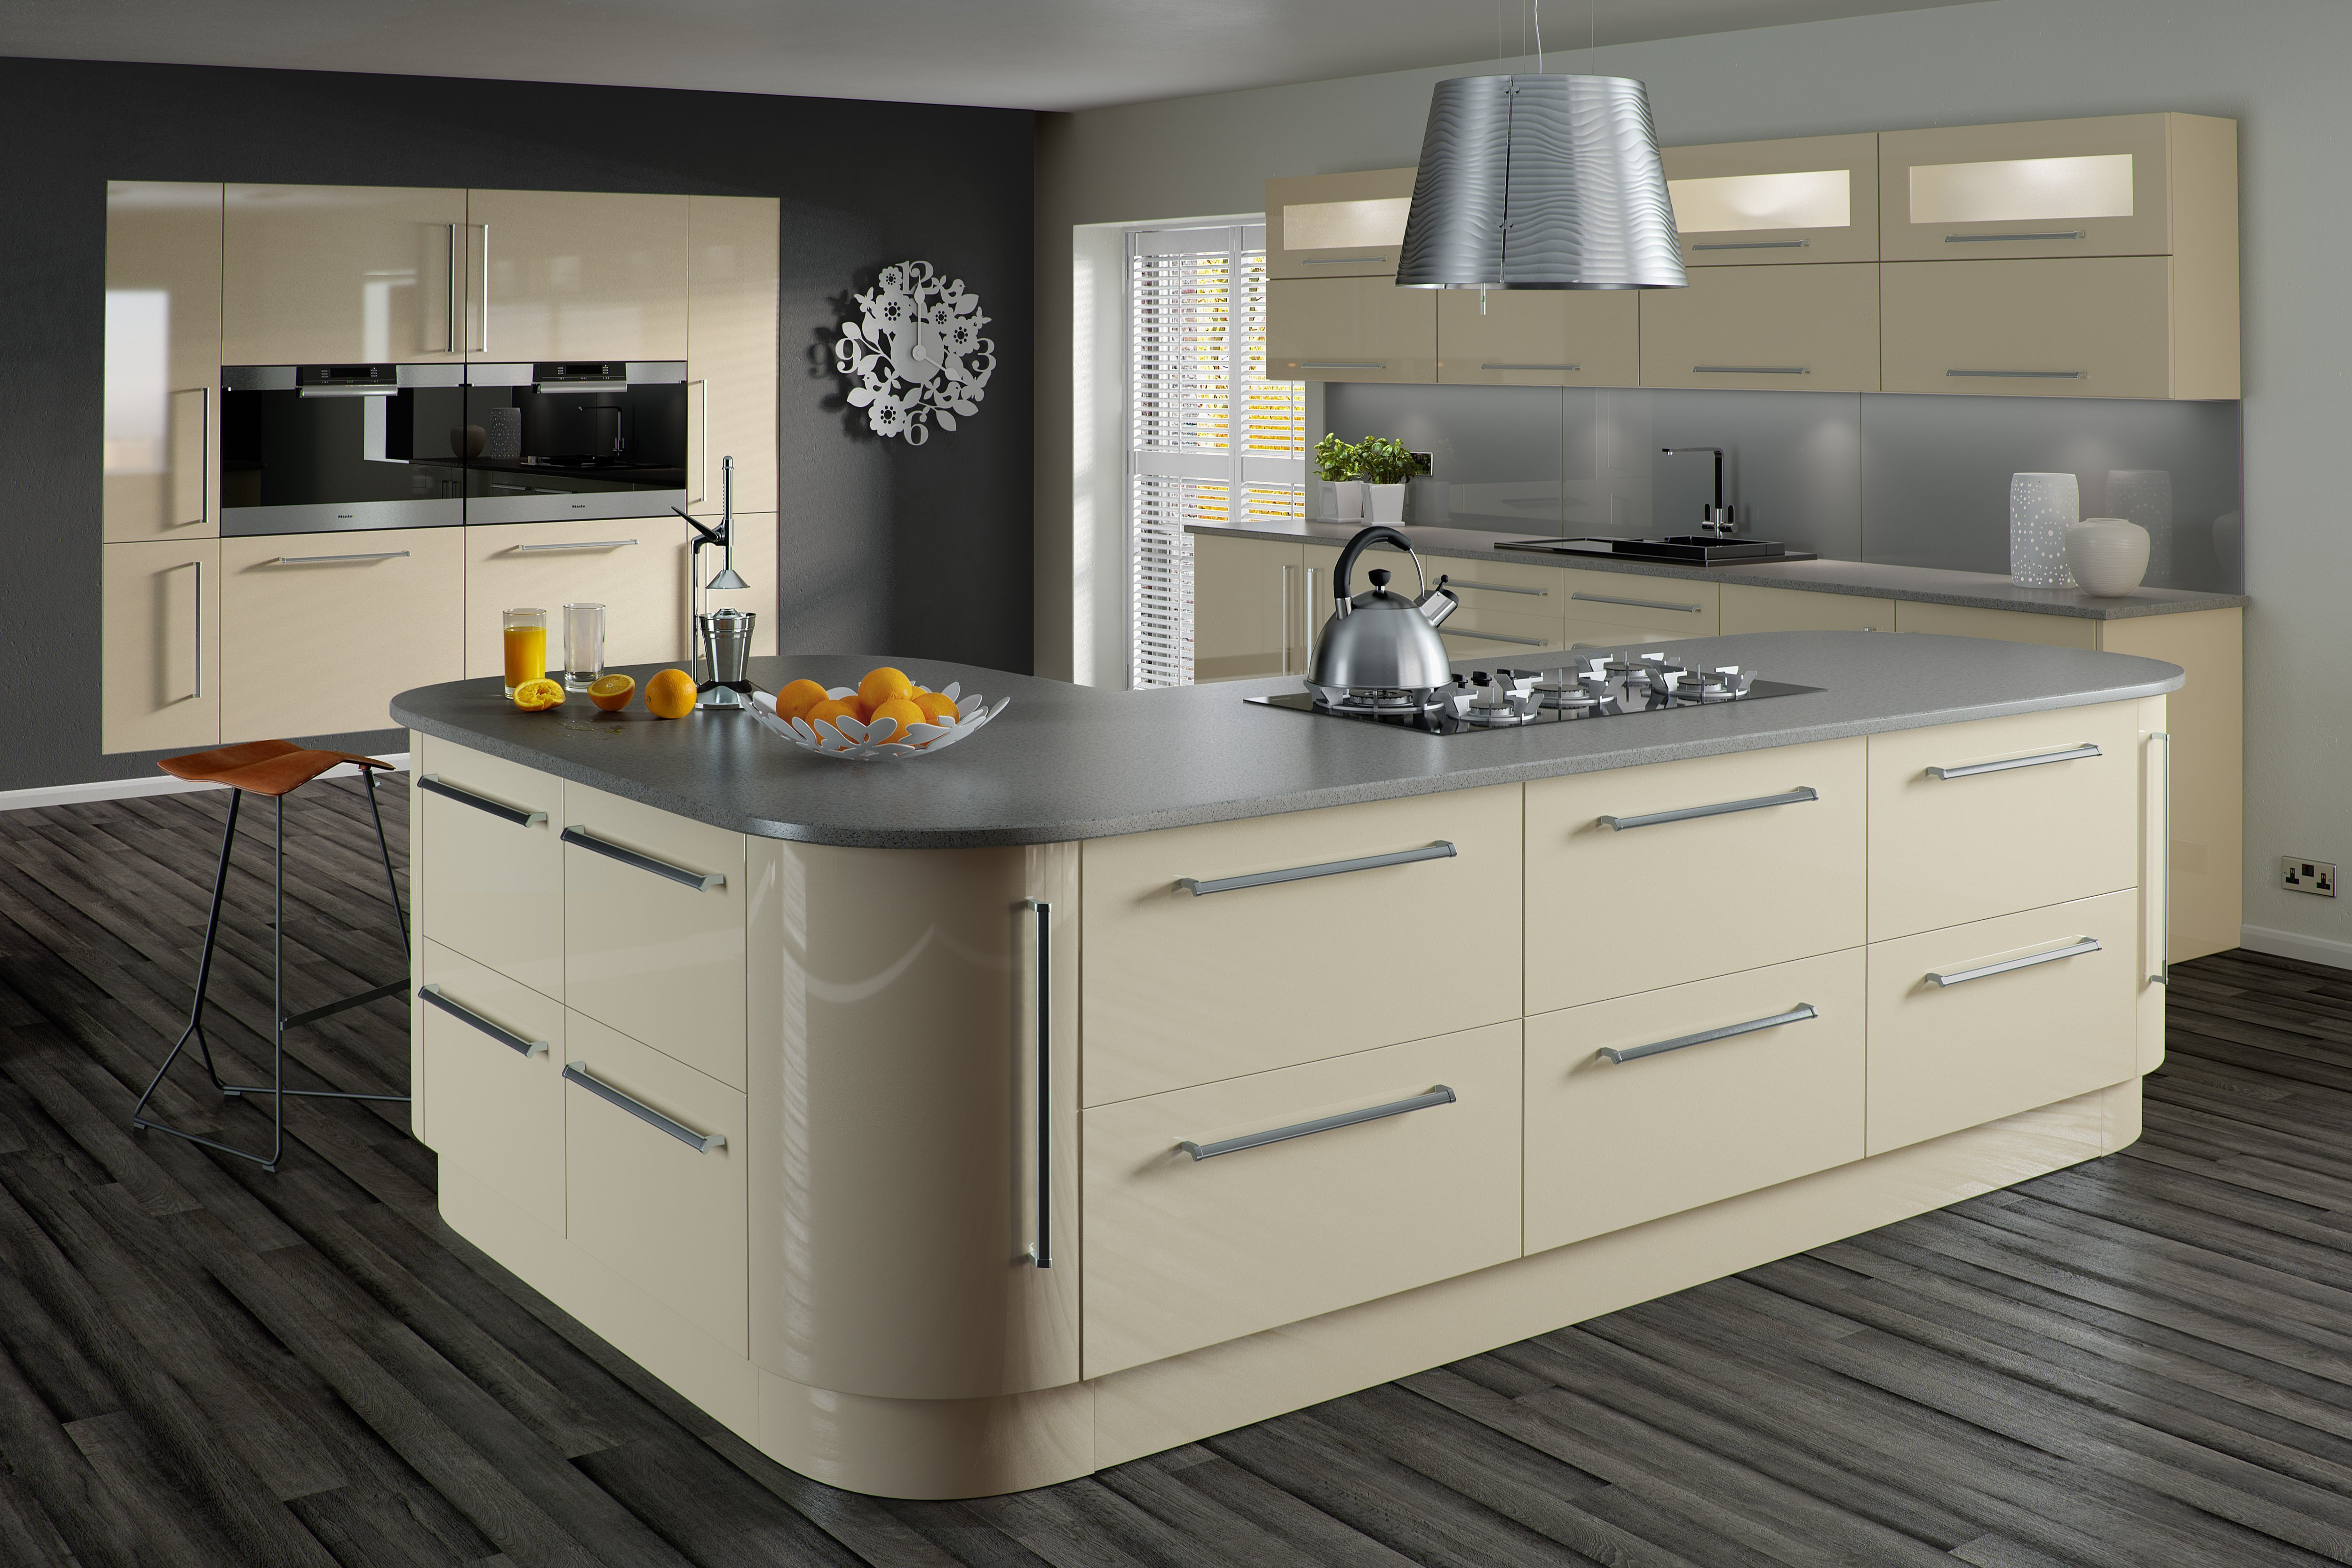 take out a trade kitchen centre trade account in glasgow